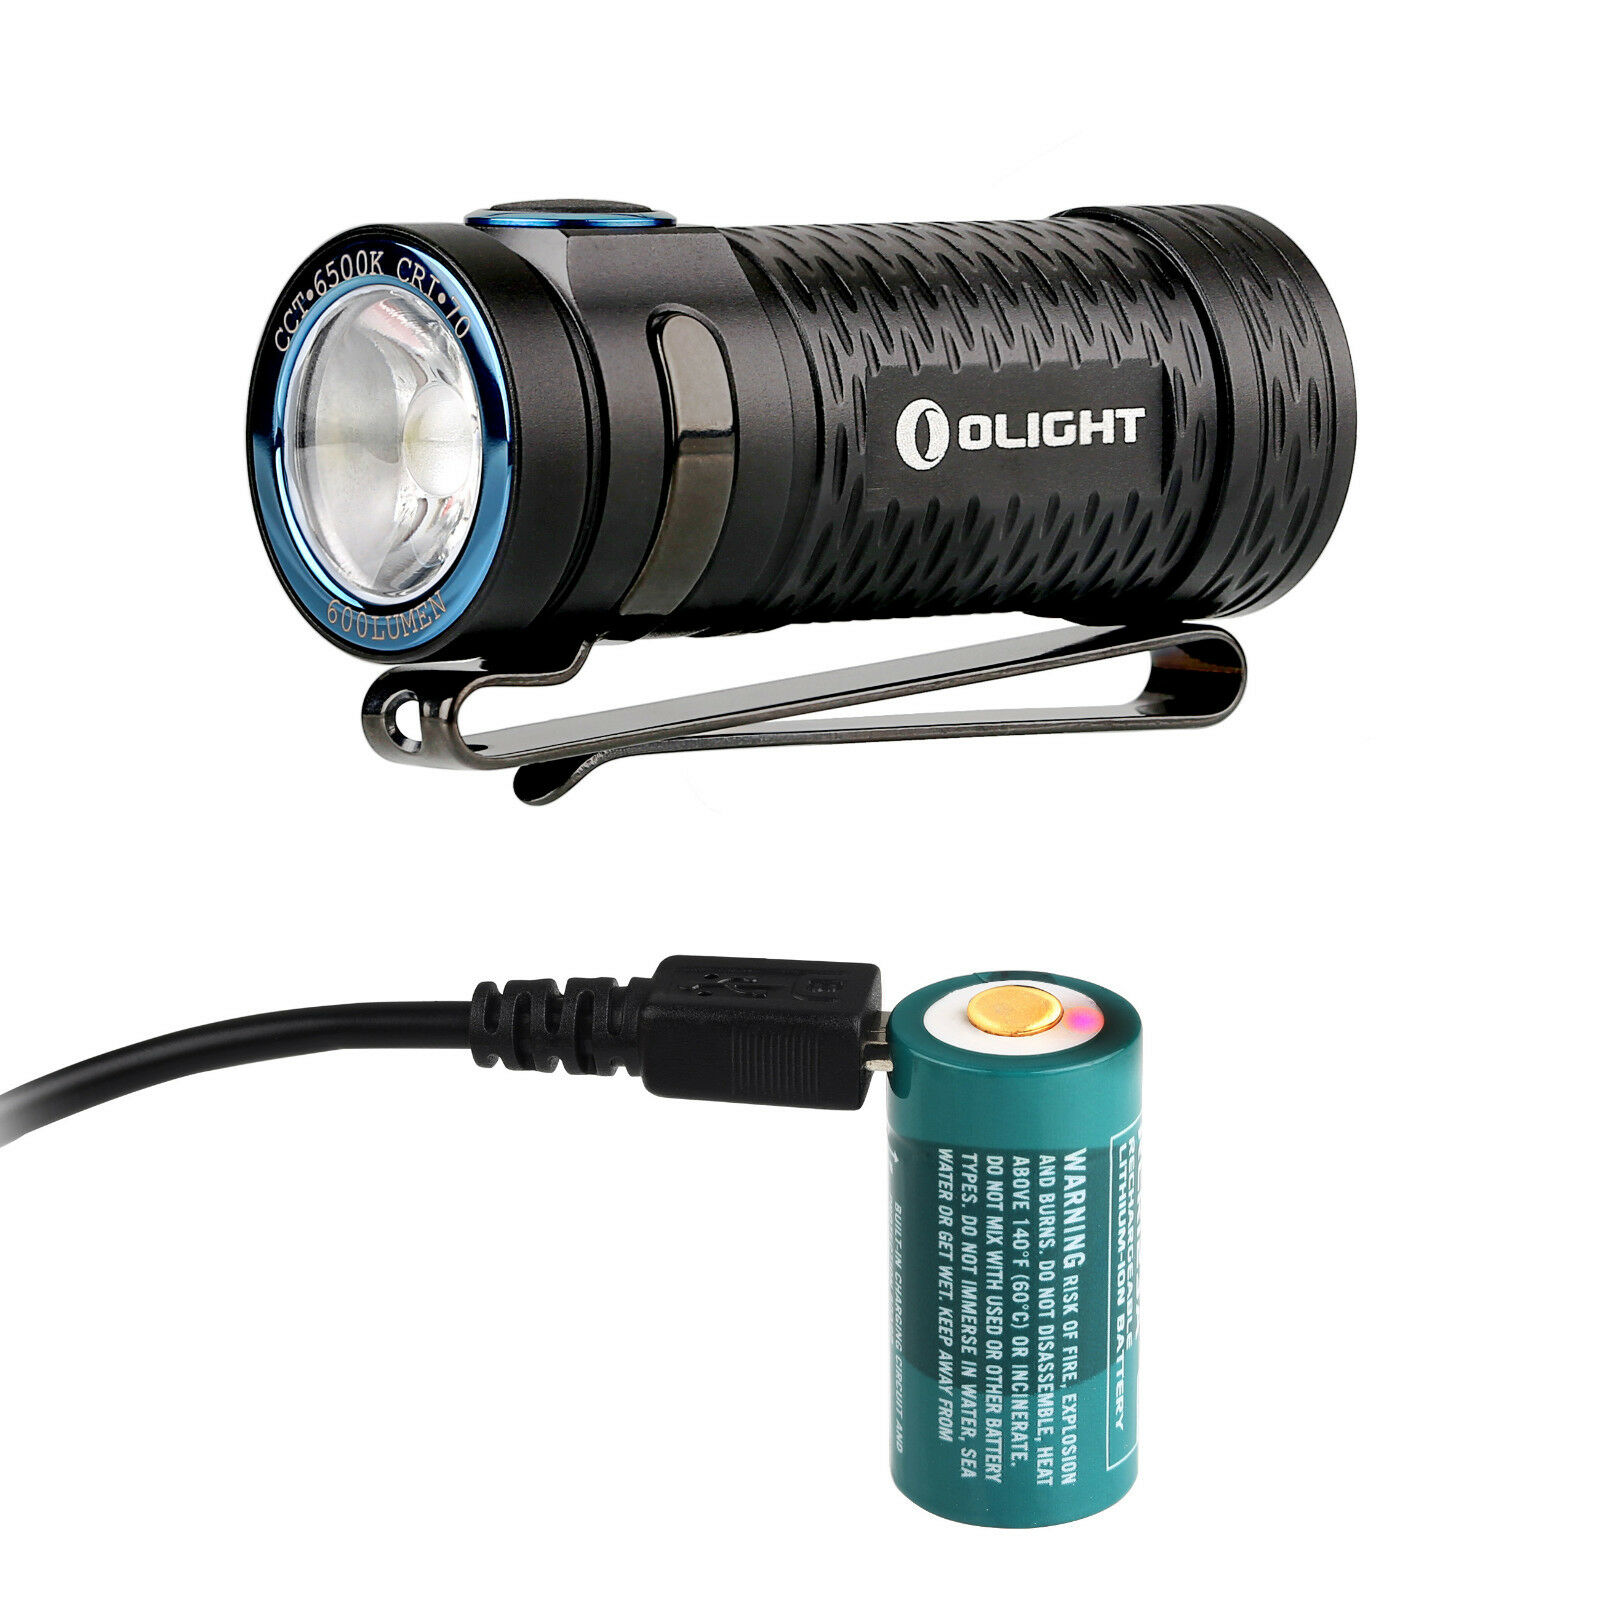 Olight S1 mini Baton  600lm Rechargeable LED Flashlight with battery, USB cable  with 100% quality and %100 service